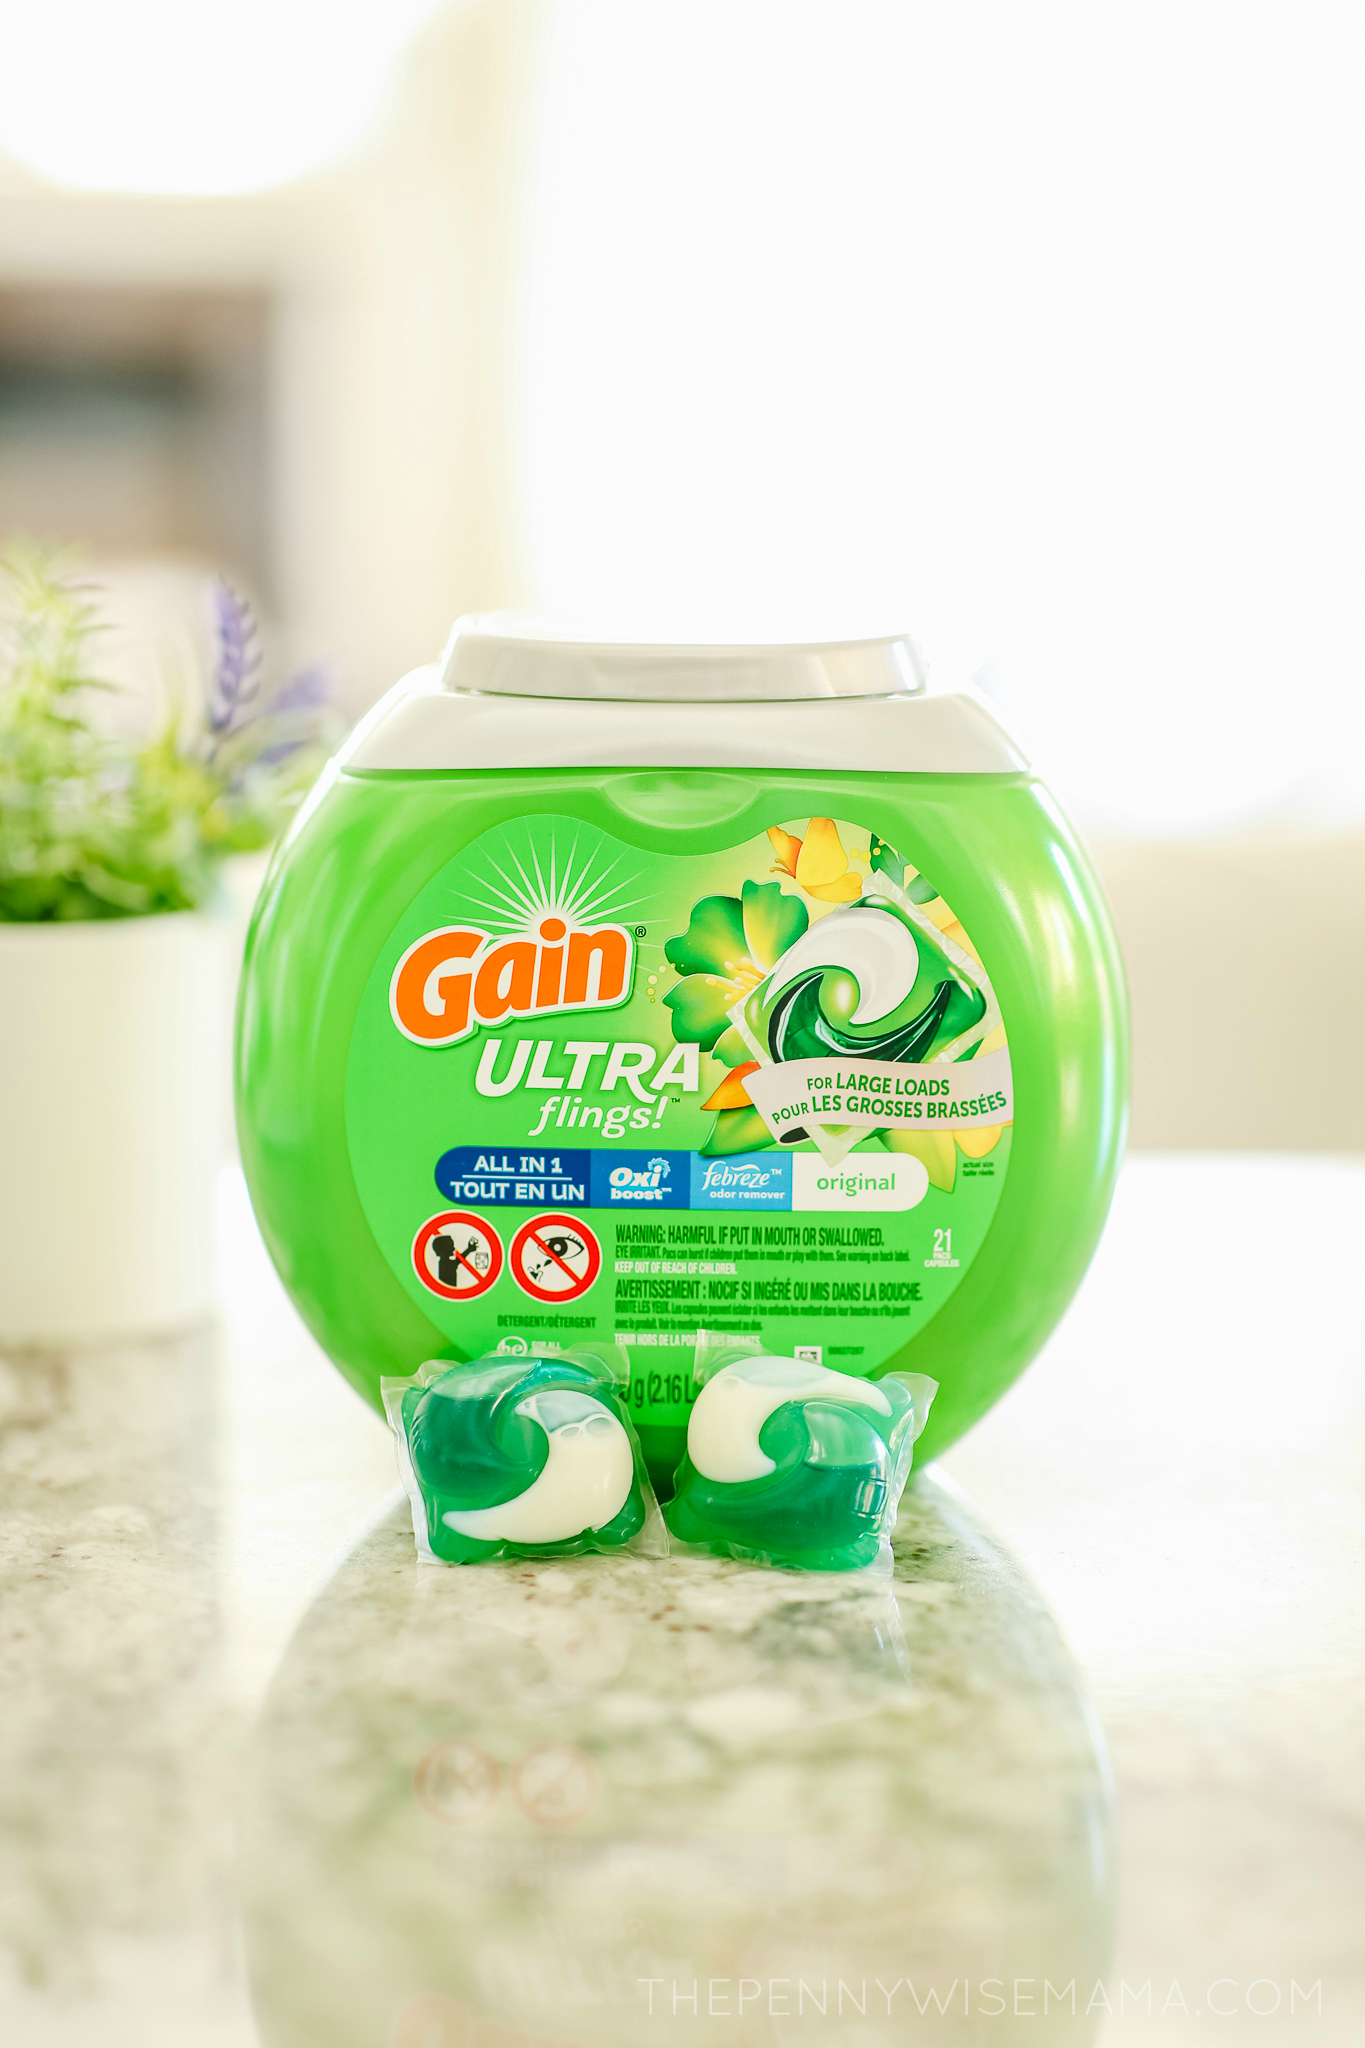 Save $2 on New Gain Ultra Flings